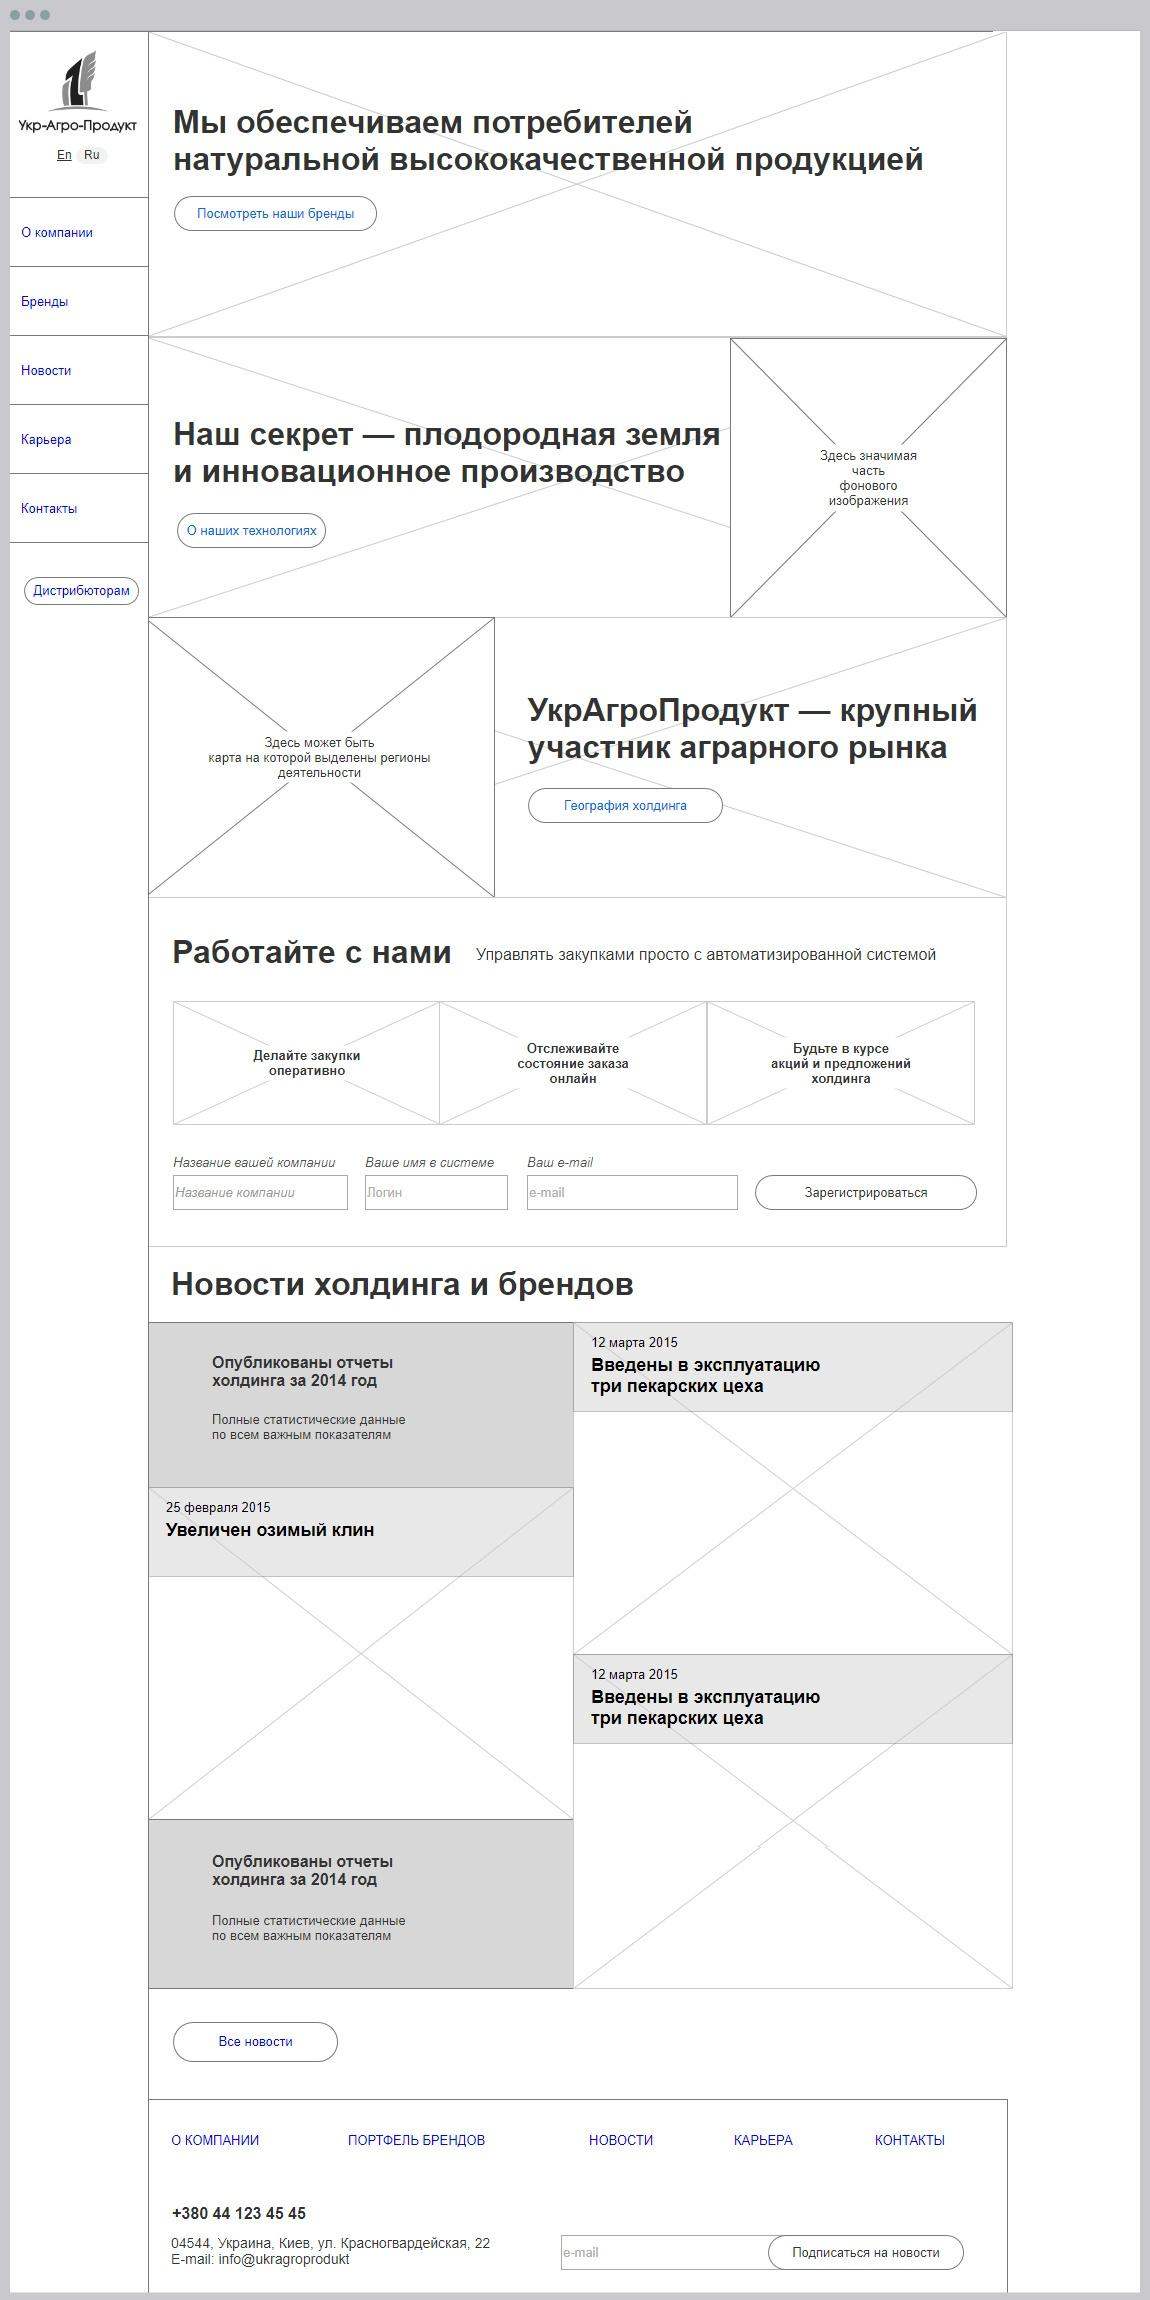 Prototype of corporate website Ukragroprodukt | Evergreen projects 10